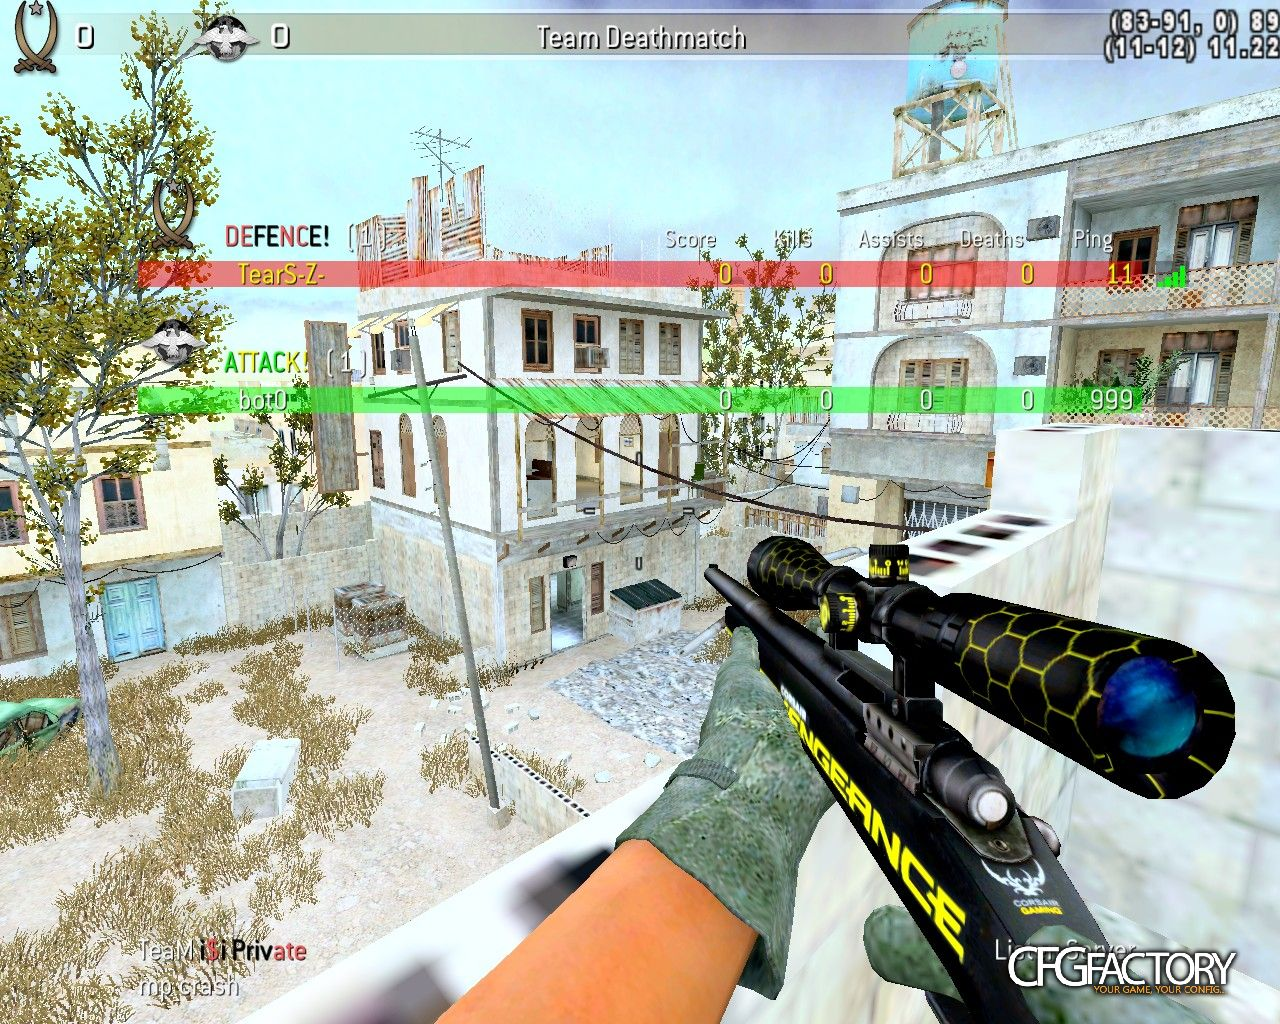 cod4, configs, tears-z-^ak^cfg, tears-z-